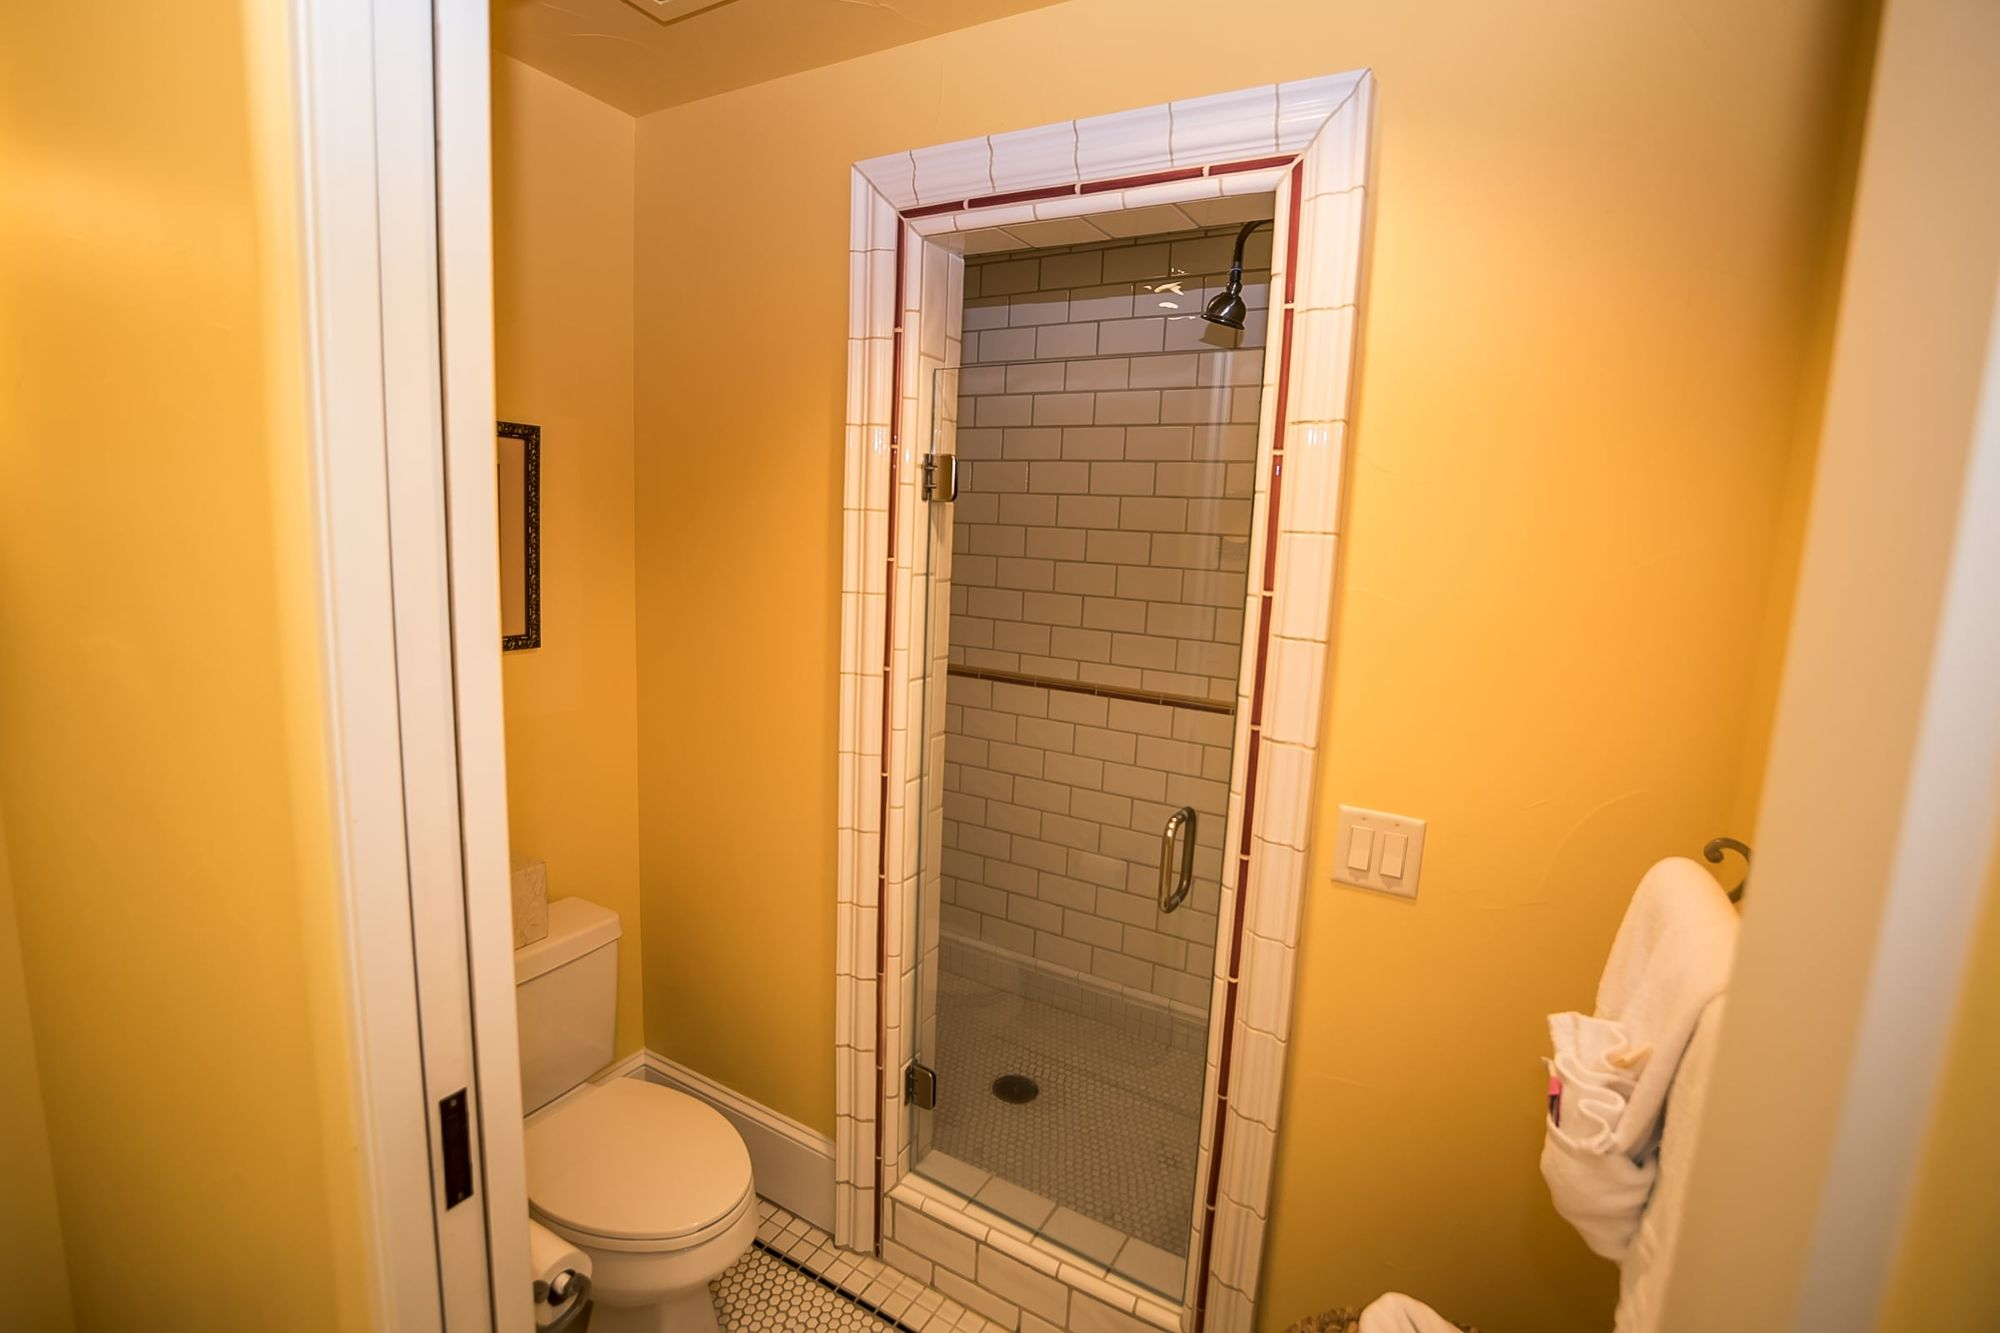 Door to walk-in shower with toilet and full rack of towels in the foreground